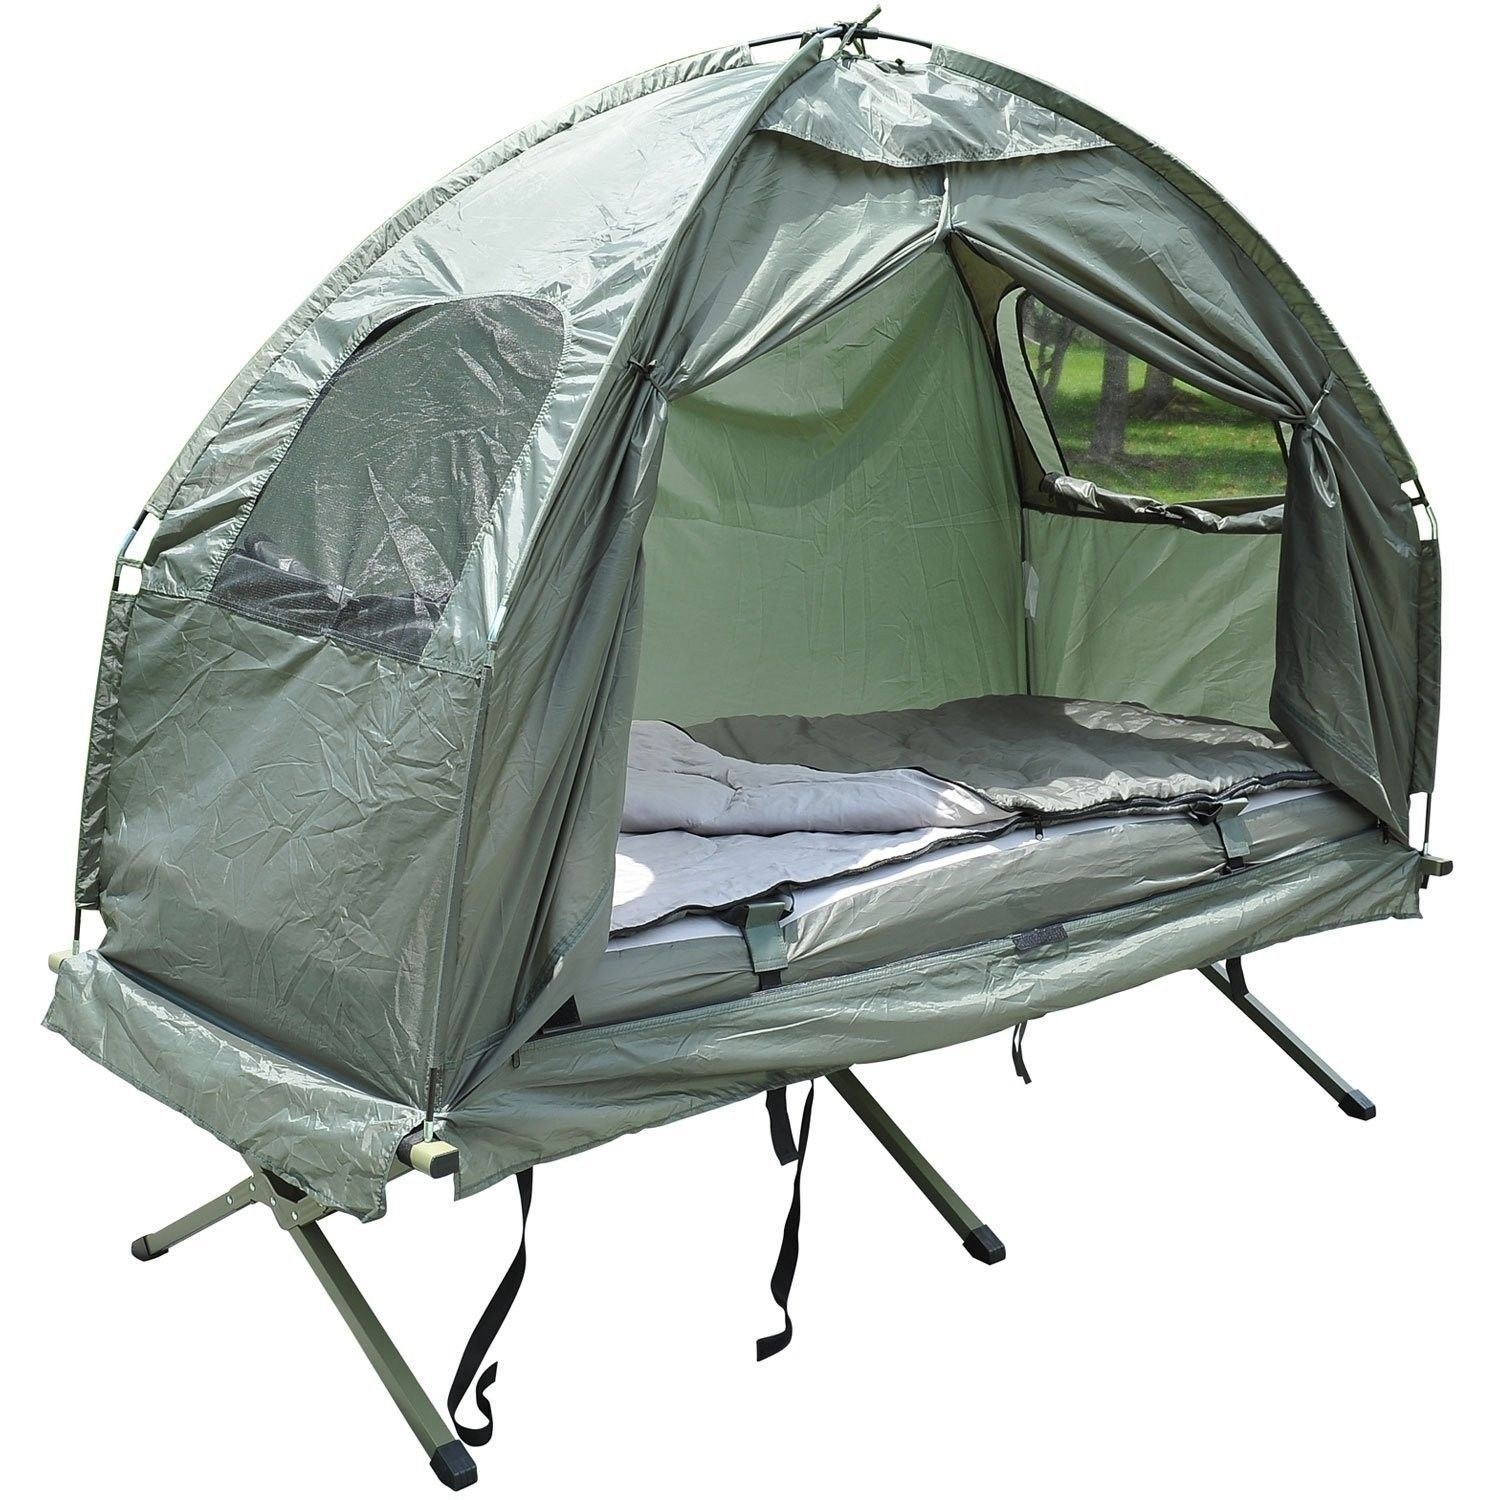 Outsunny Compact Portable Pop Up Tent Camping Cot With Air